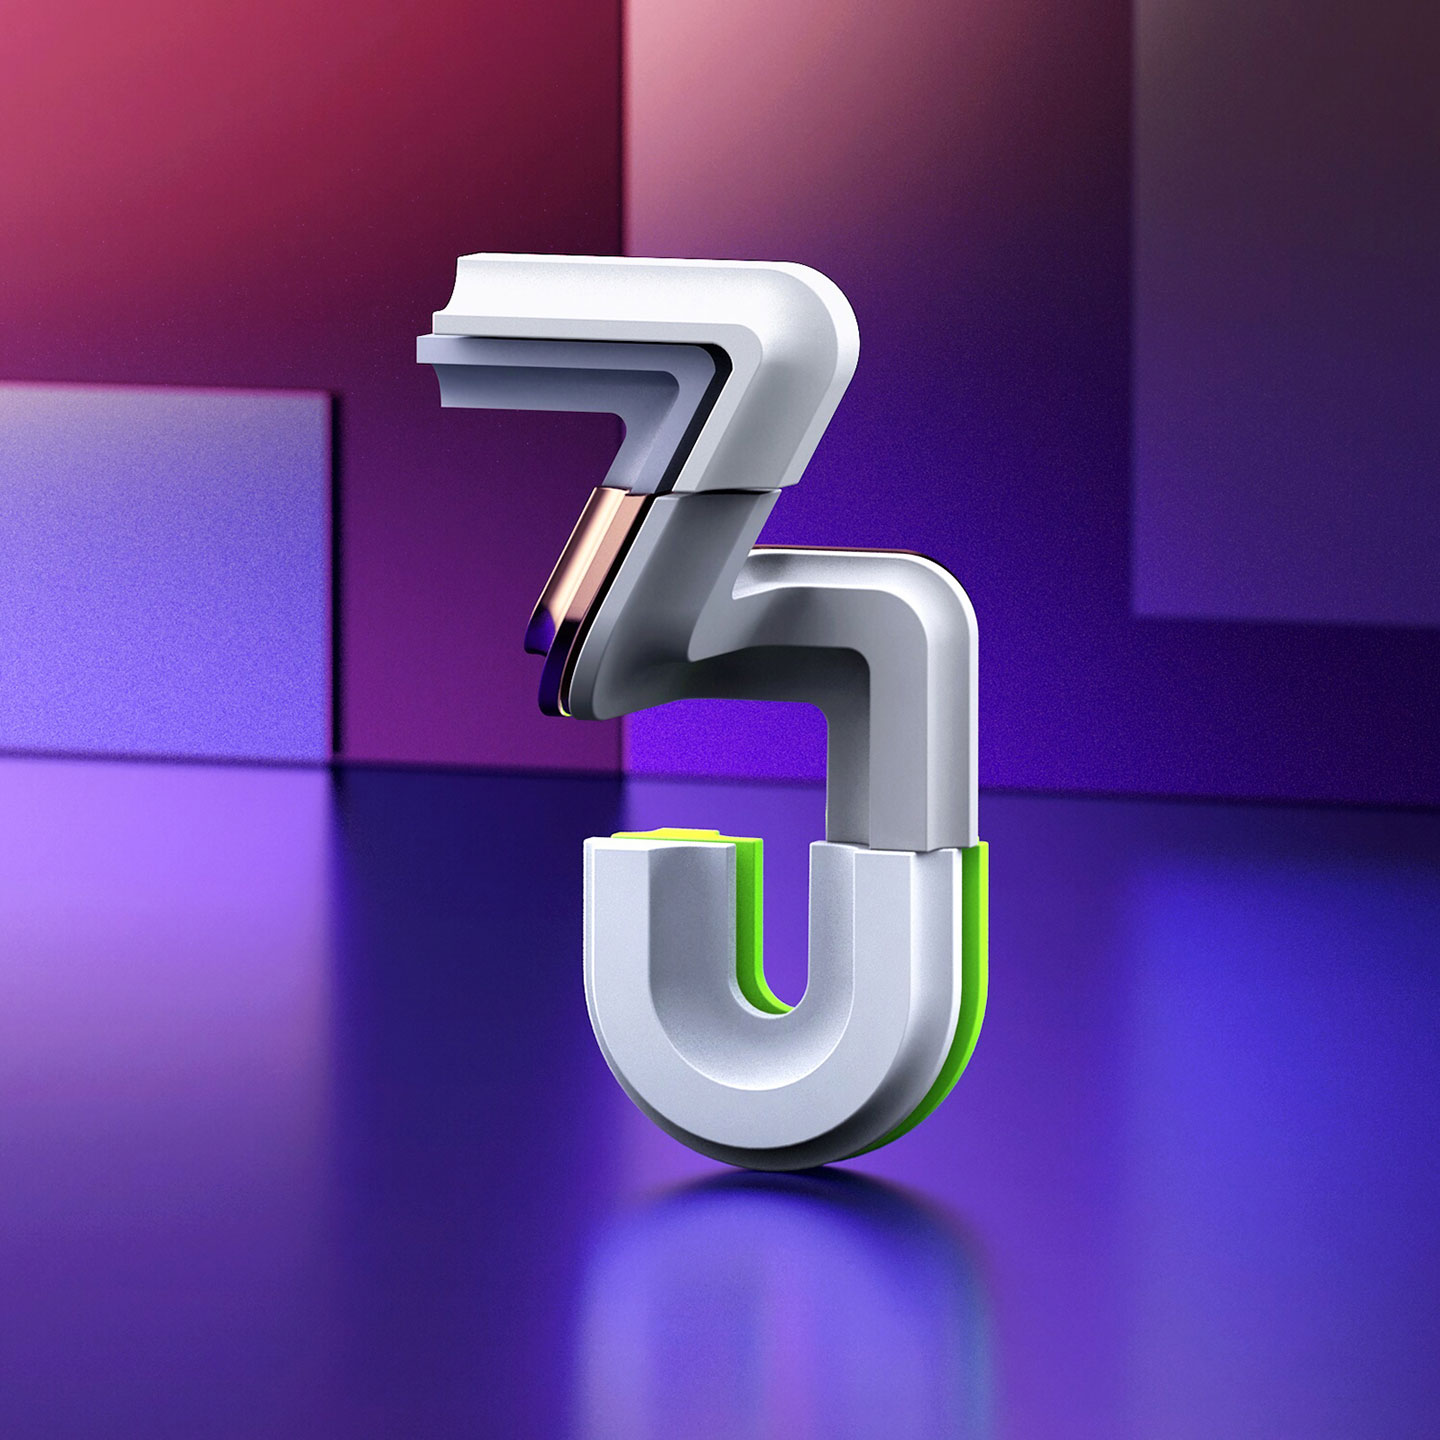 36 Days of Type 2017 - 3D number 3 design visual.